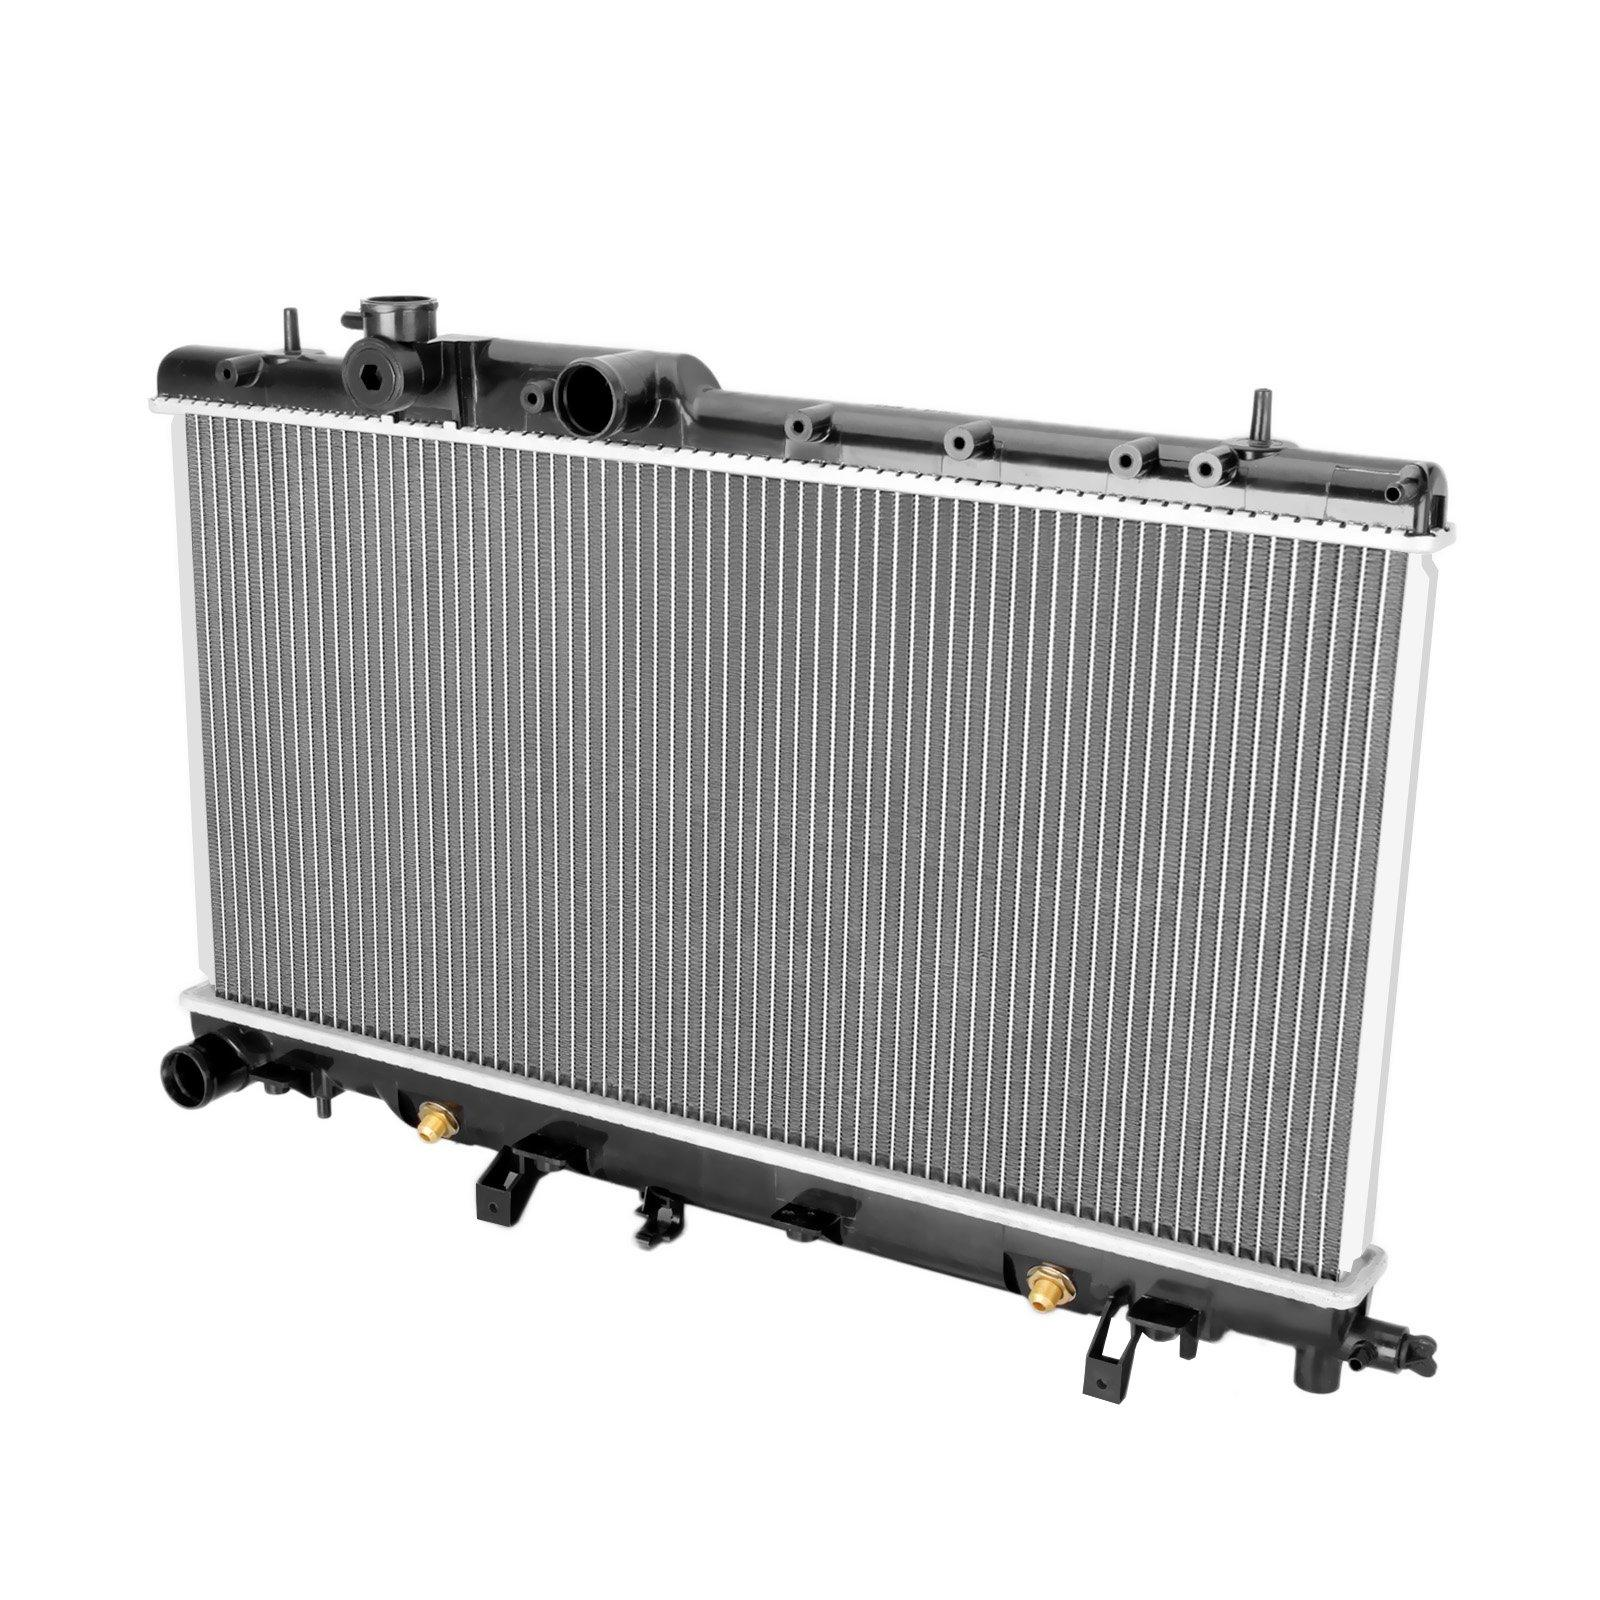 Radiator For Subaru Liberty Outback 2.0L 2.5L EJ20 EJ25 11/98-8/03 Auto/Manual